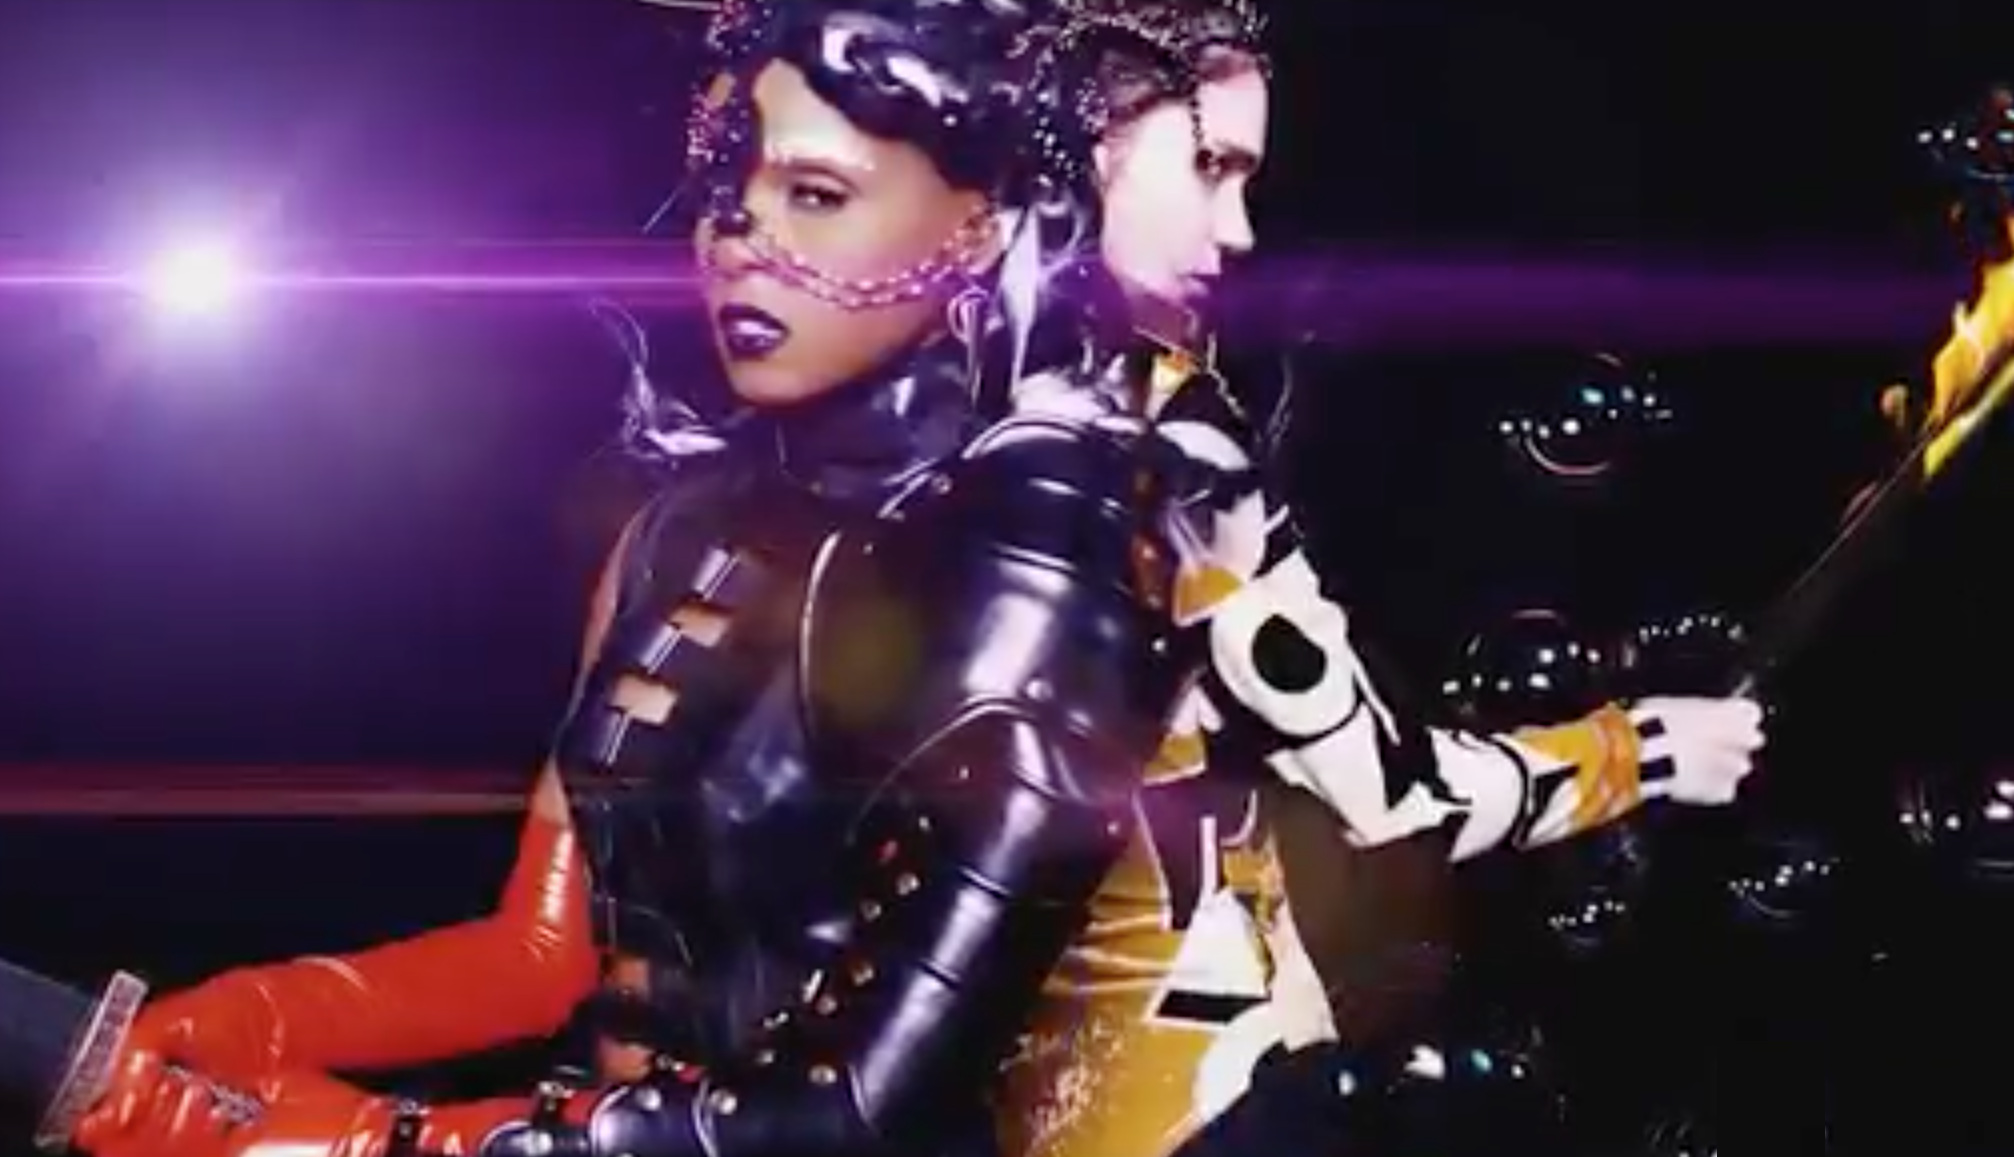 Grimes and Janelle Monáe tease 'Venus Fly' video out tomorrow